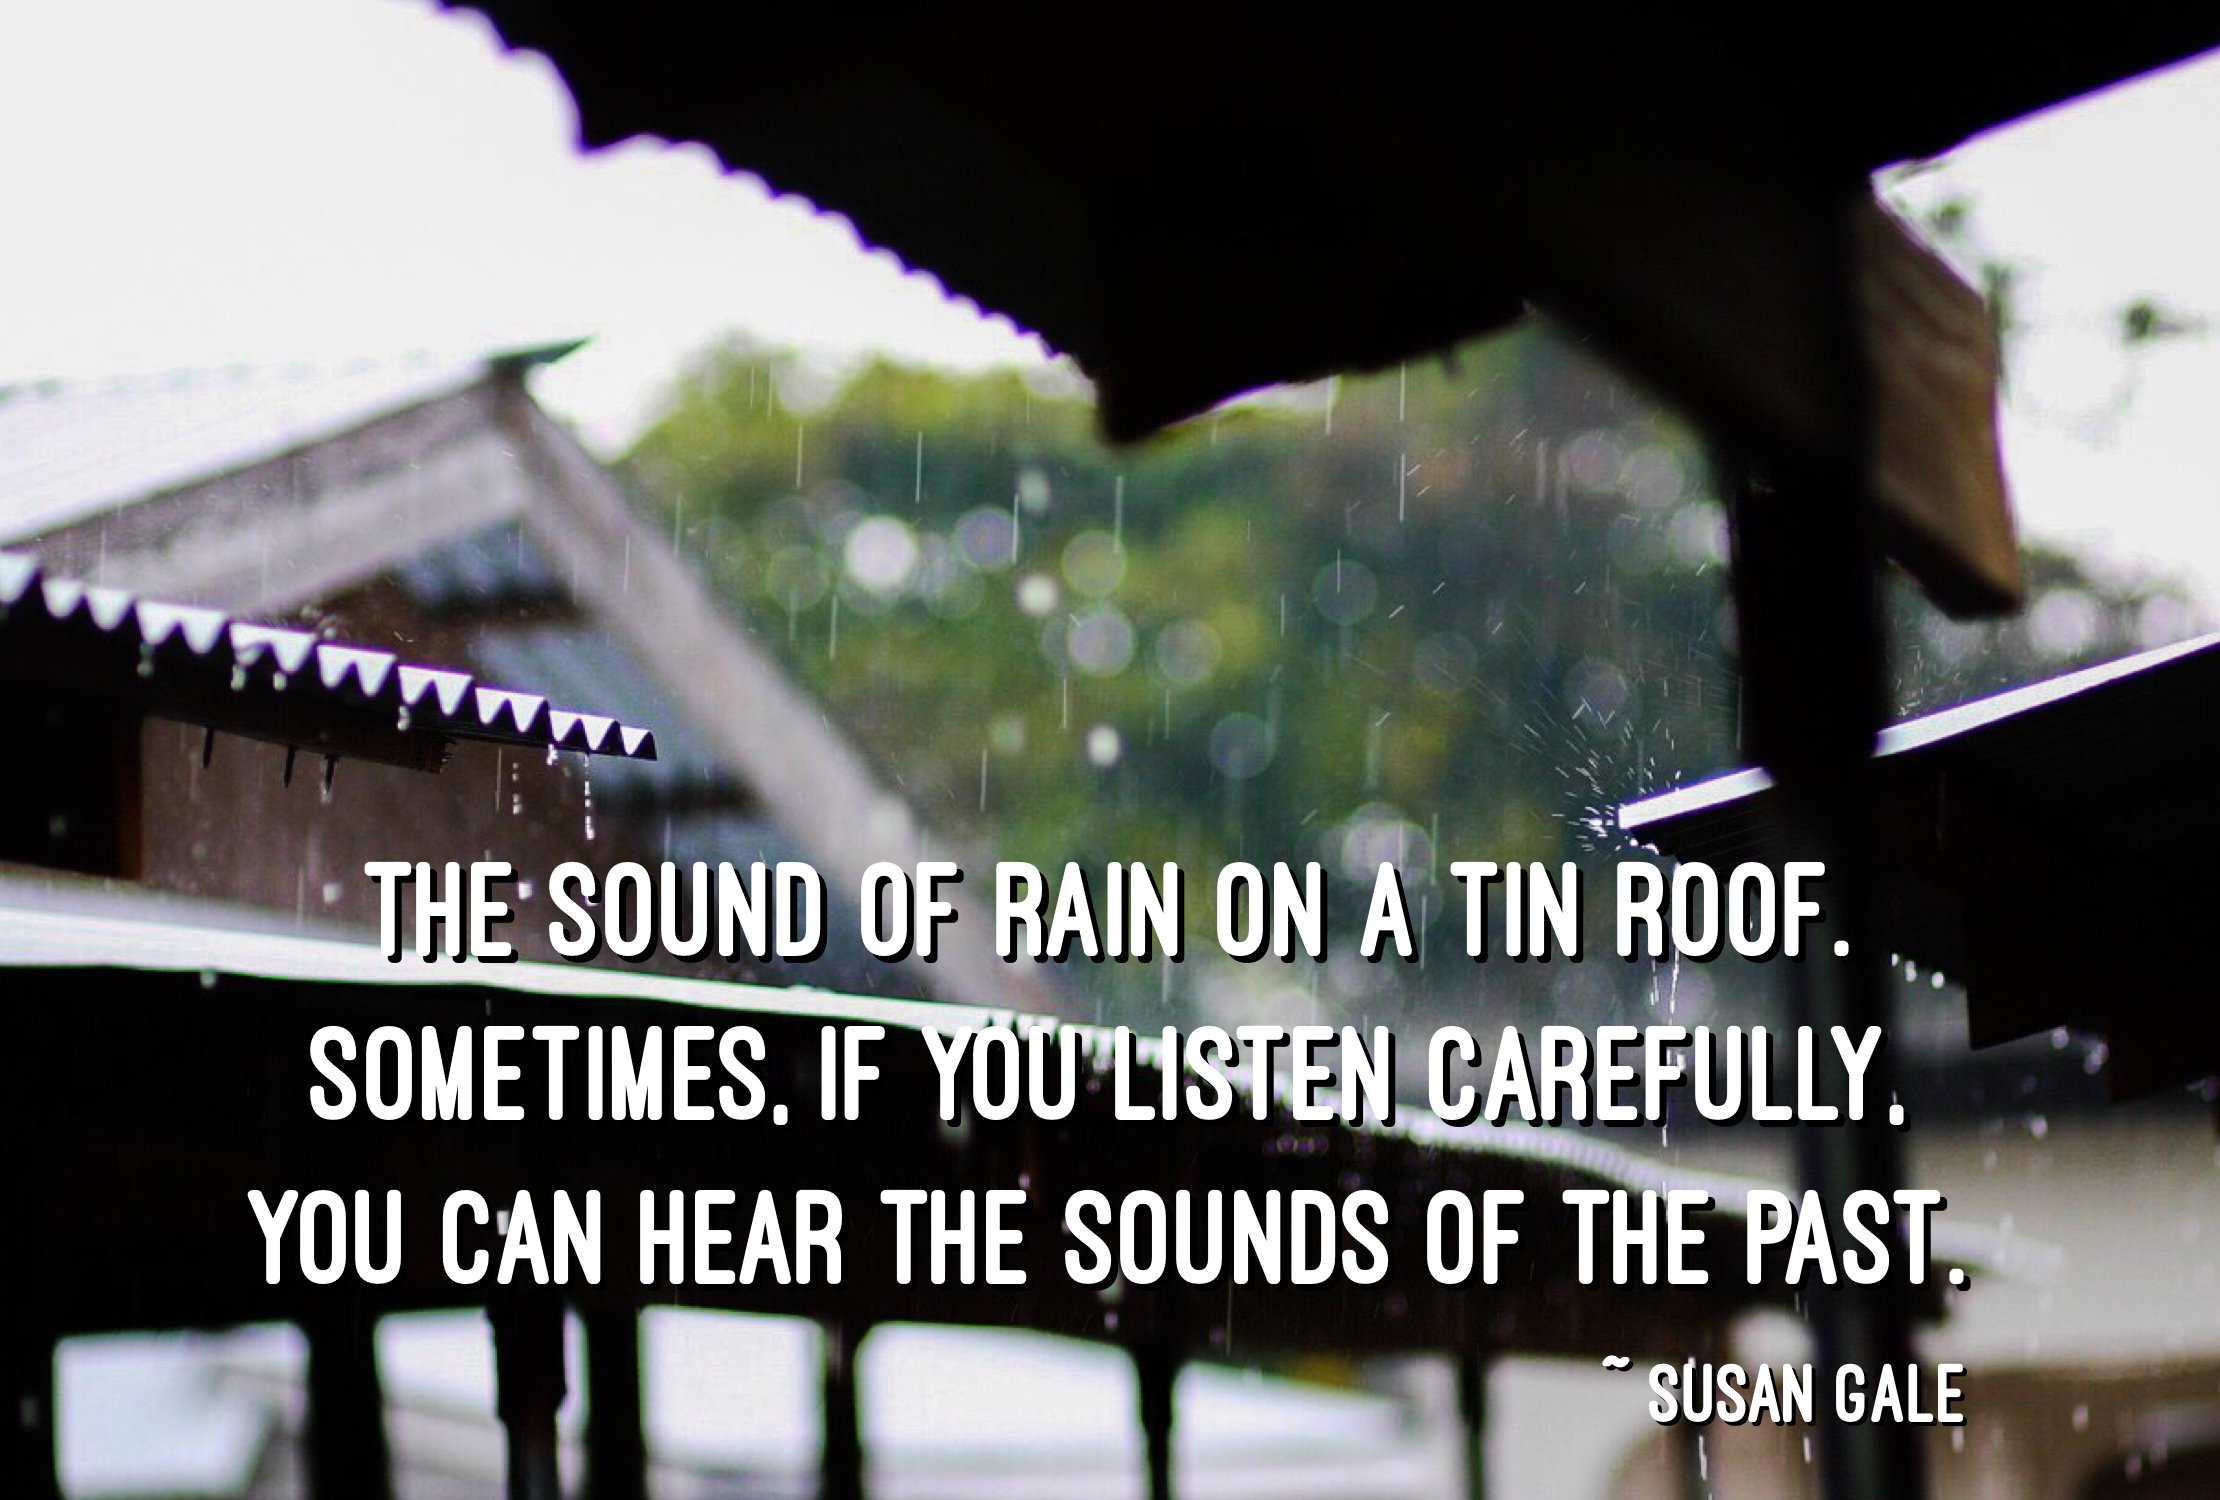 Rain On A Tin Roof Tin Roof Sound Of Rain Southern Sayings